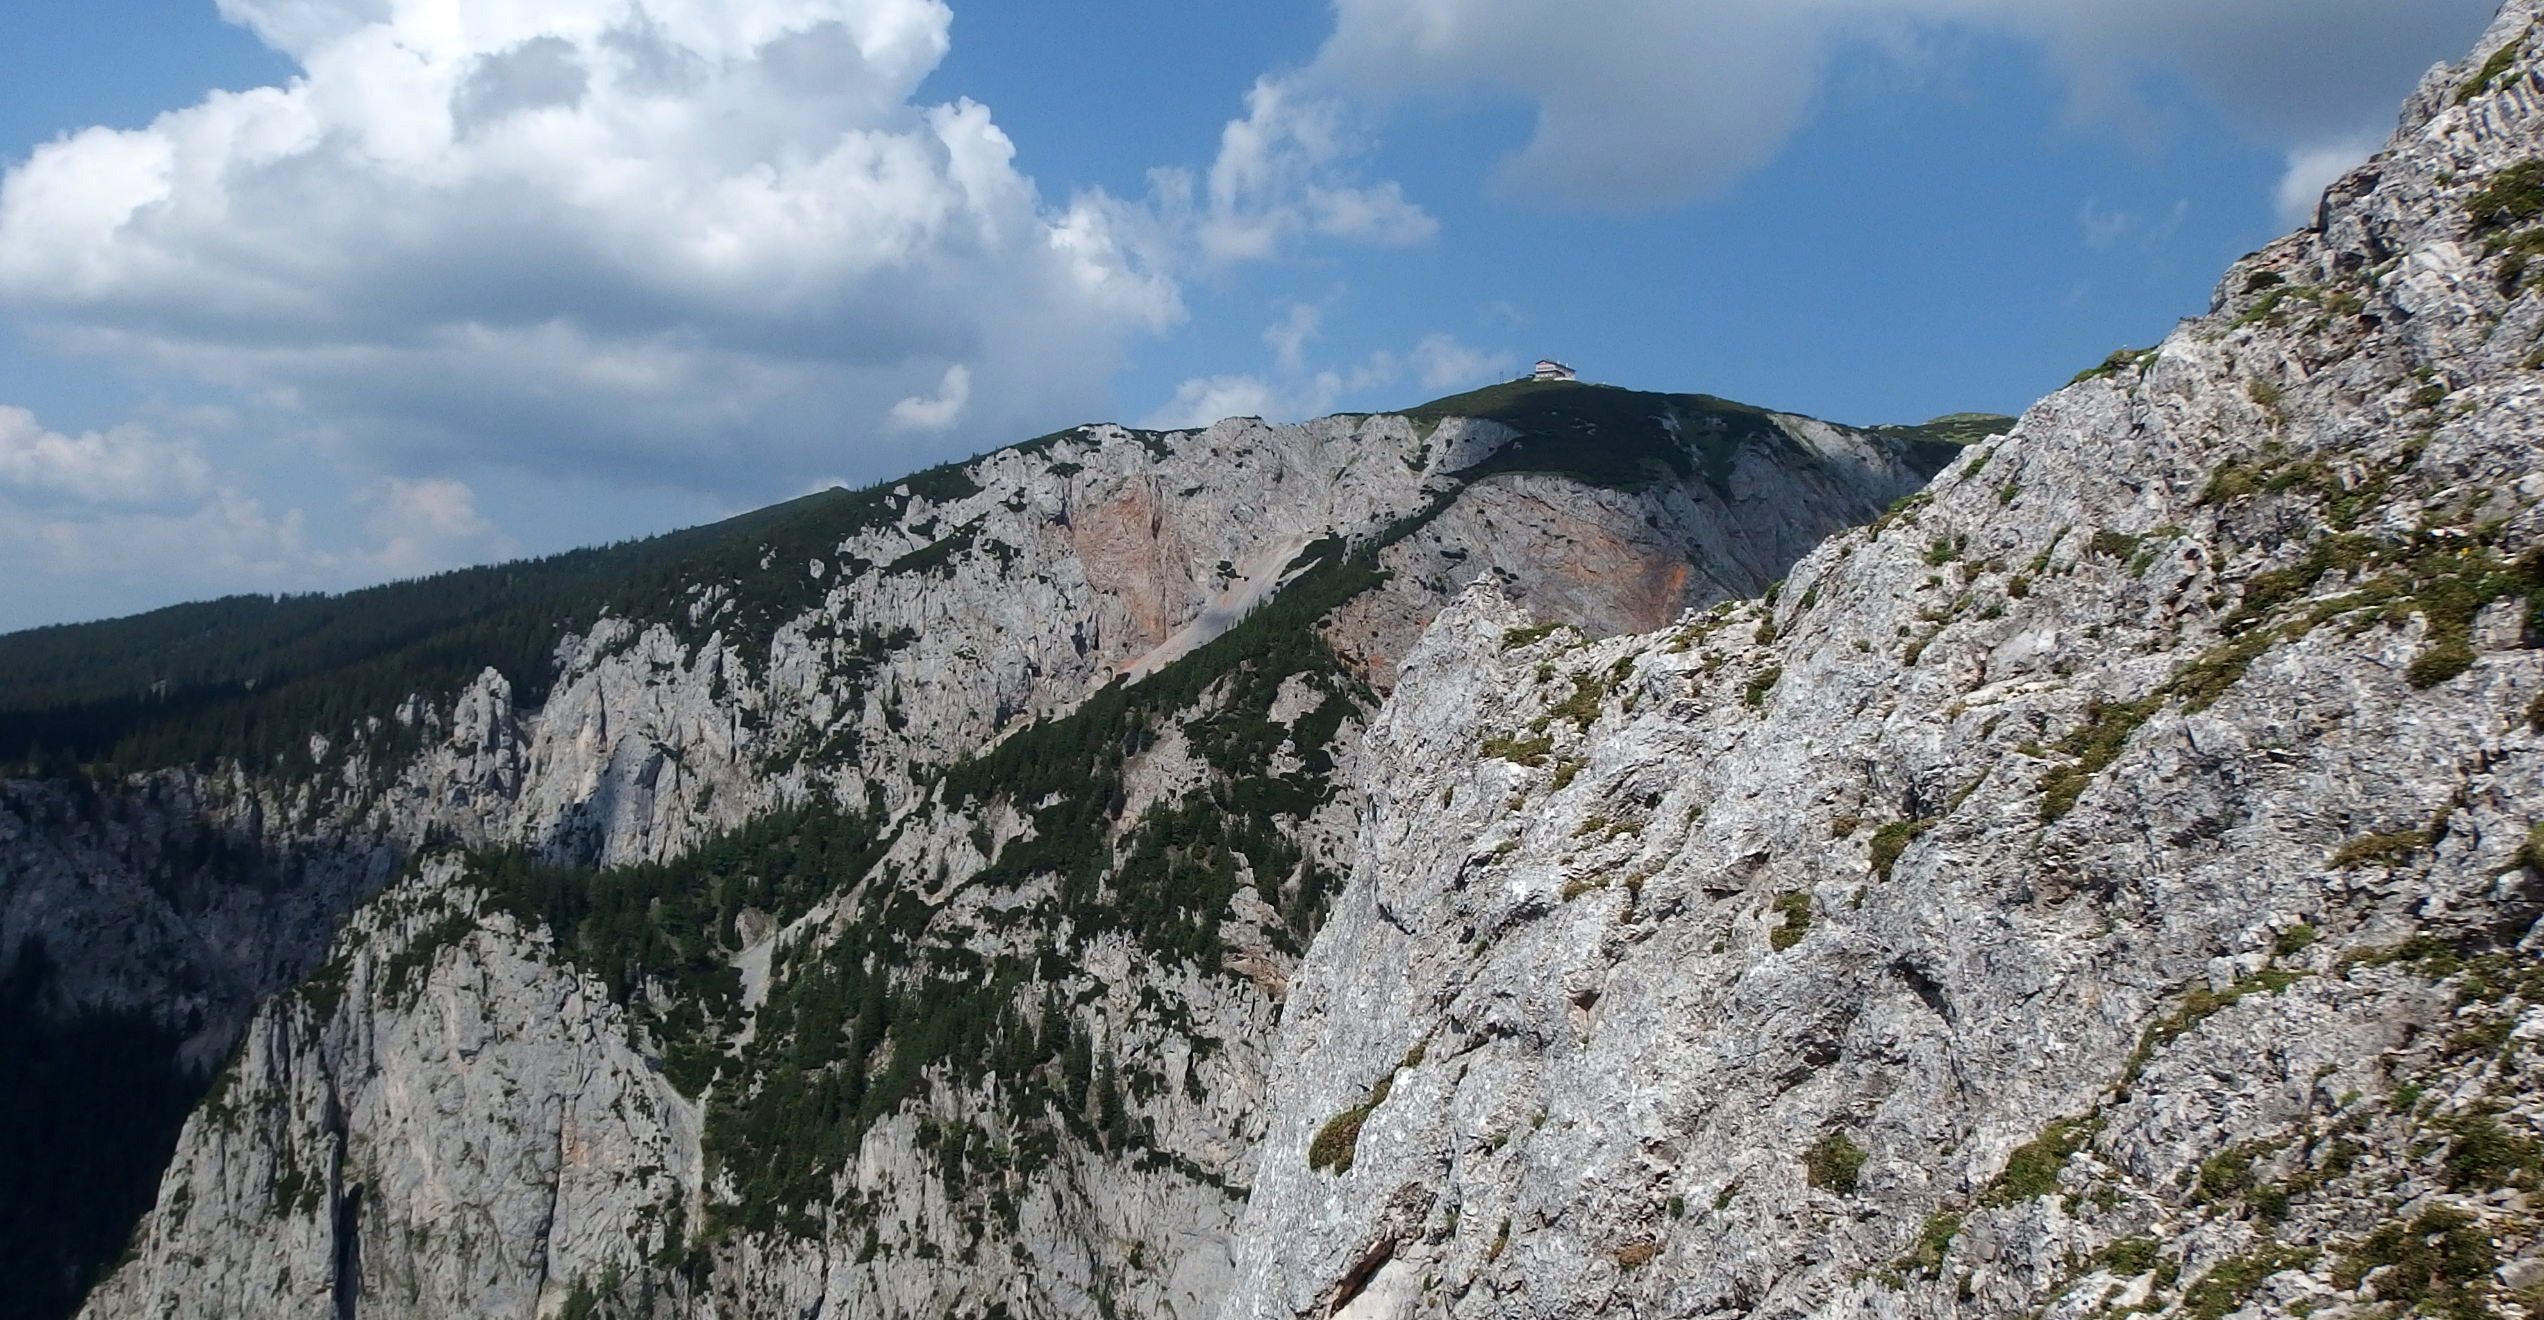 Wildfährte - ferrata with great views and medium difficulties